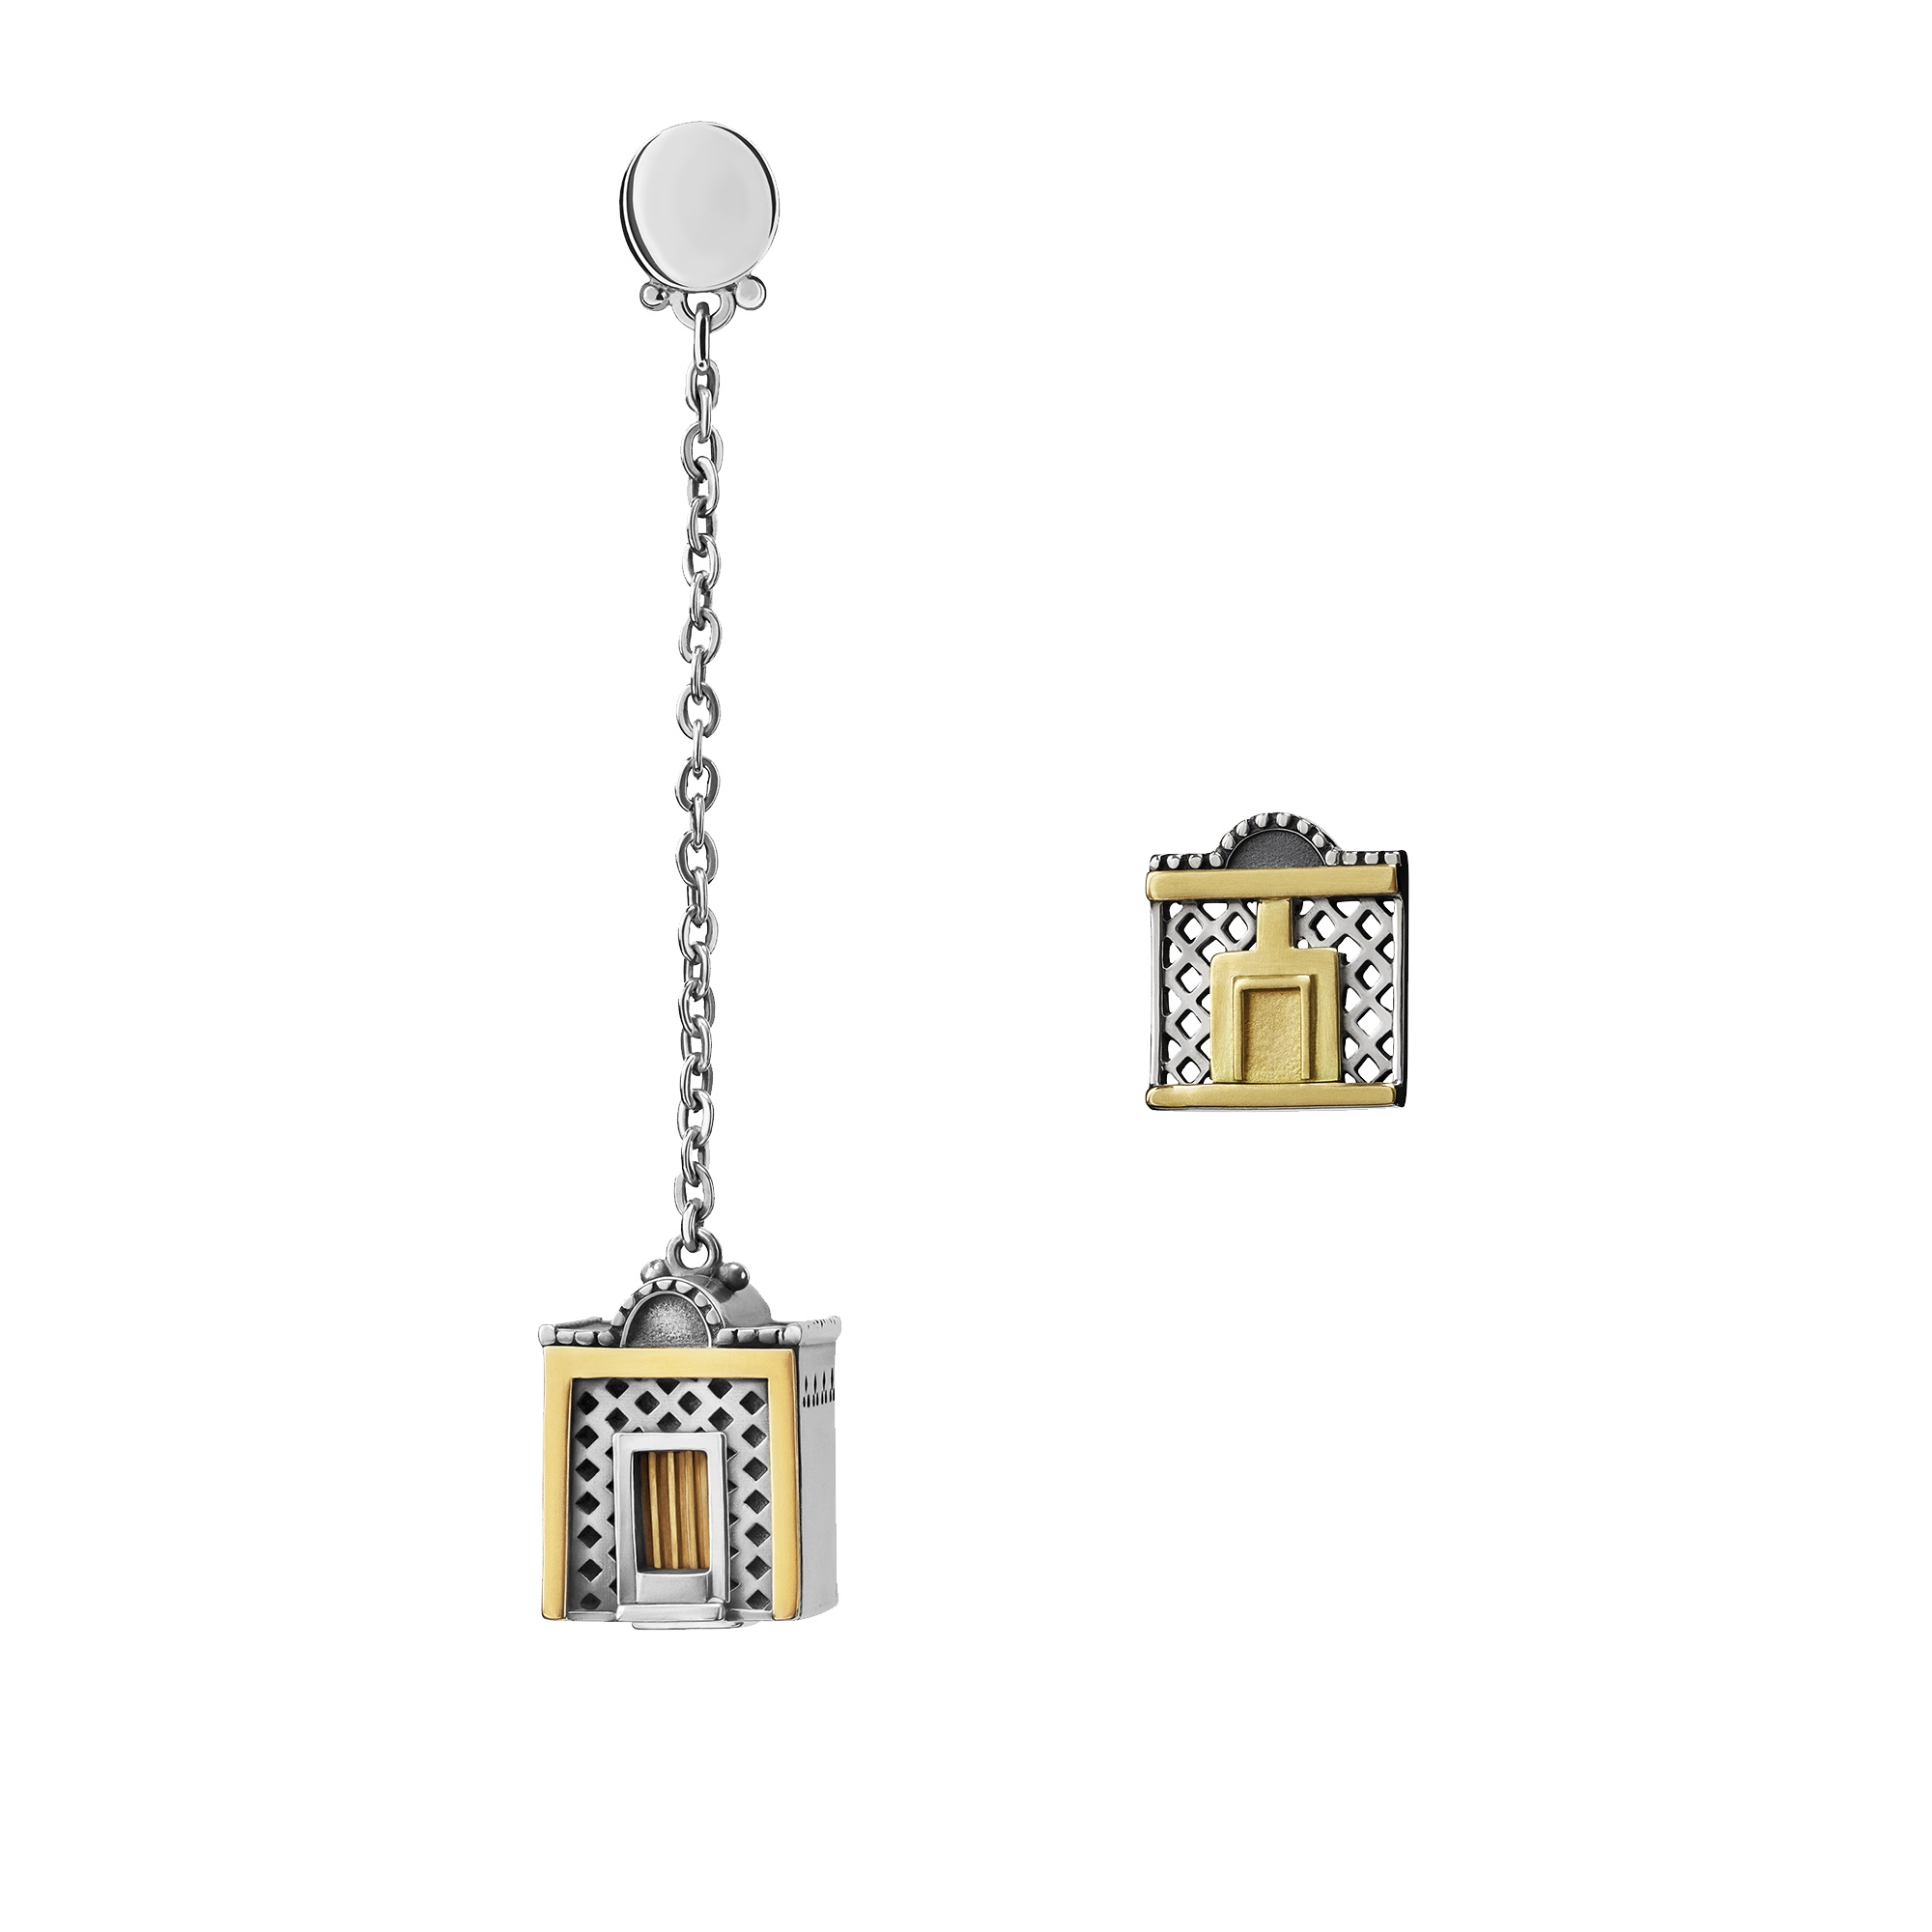 Azza Fahmy Jewellery Nubia collection sculptural earrings